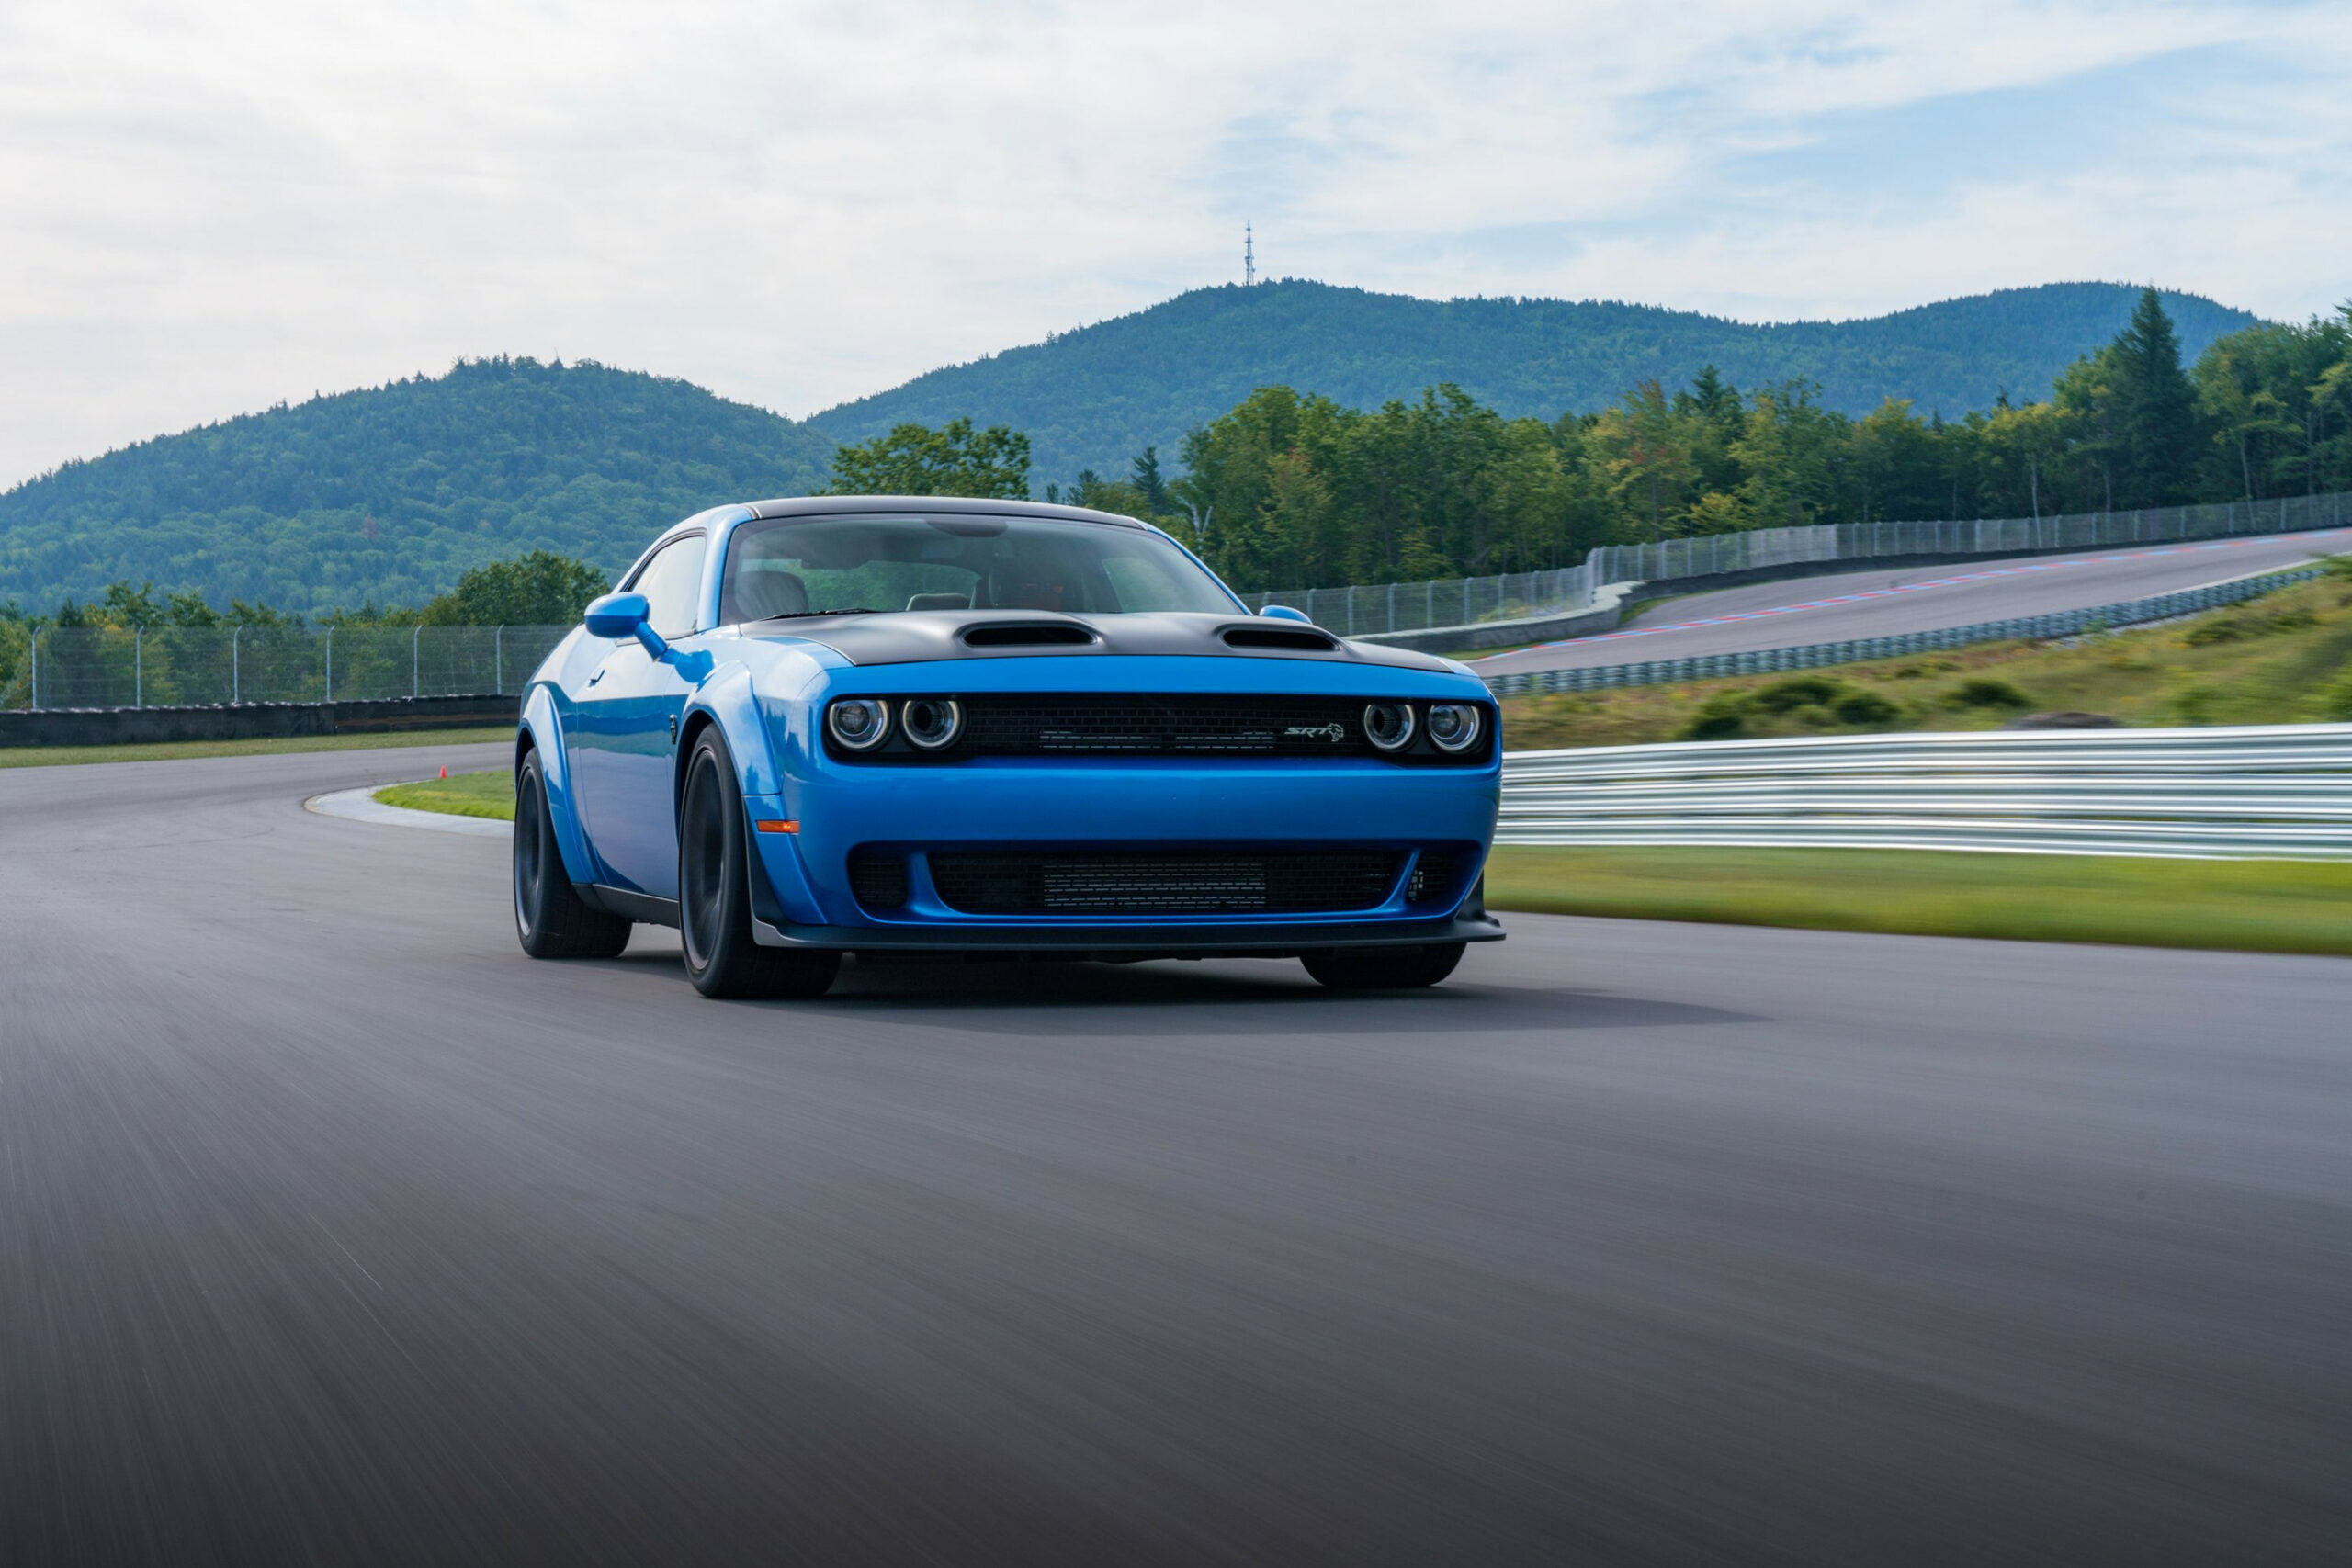 12 Dodge Challenger SRT Hellcat Review, Pricing, and Specs - price of 2020 dodge challenger